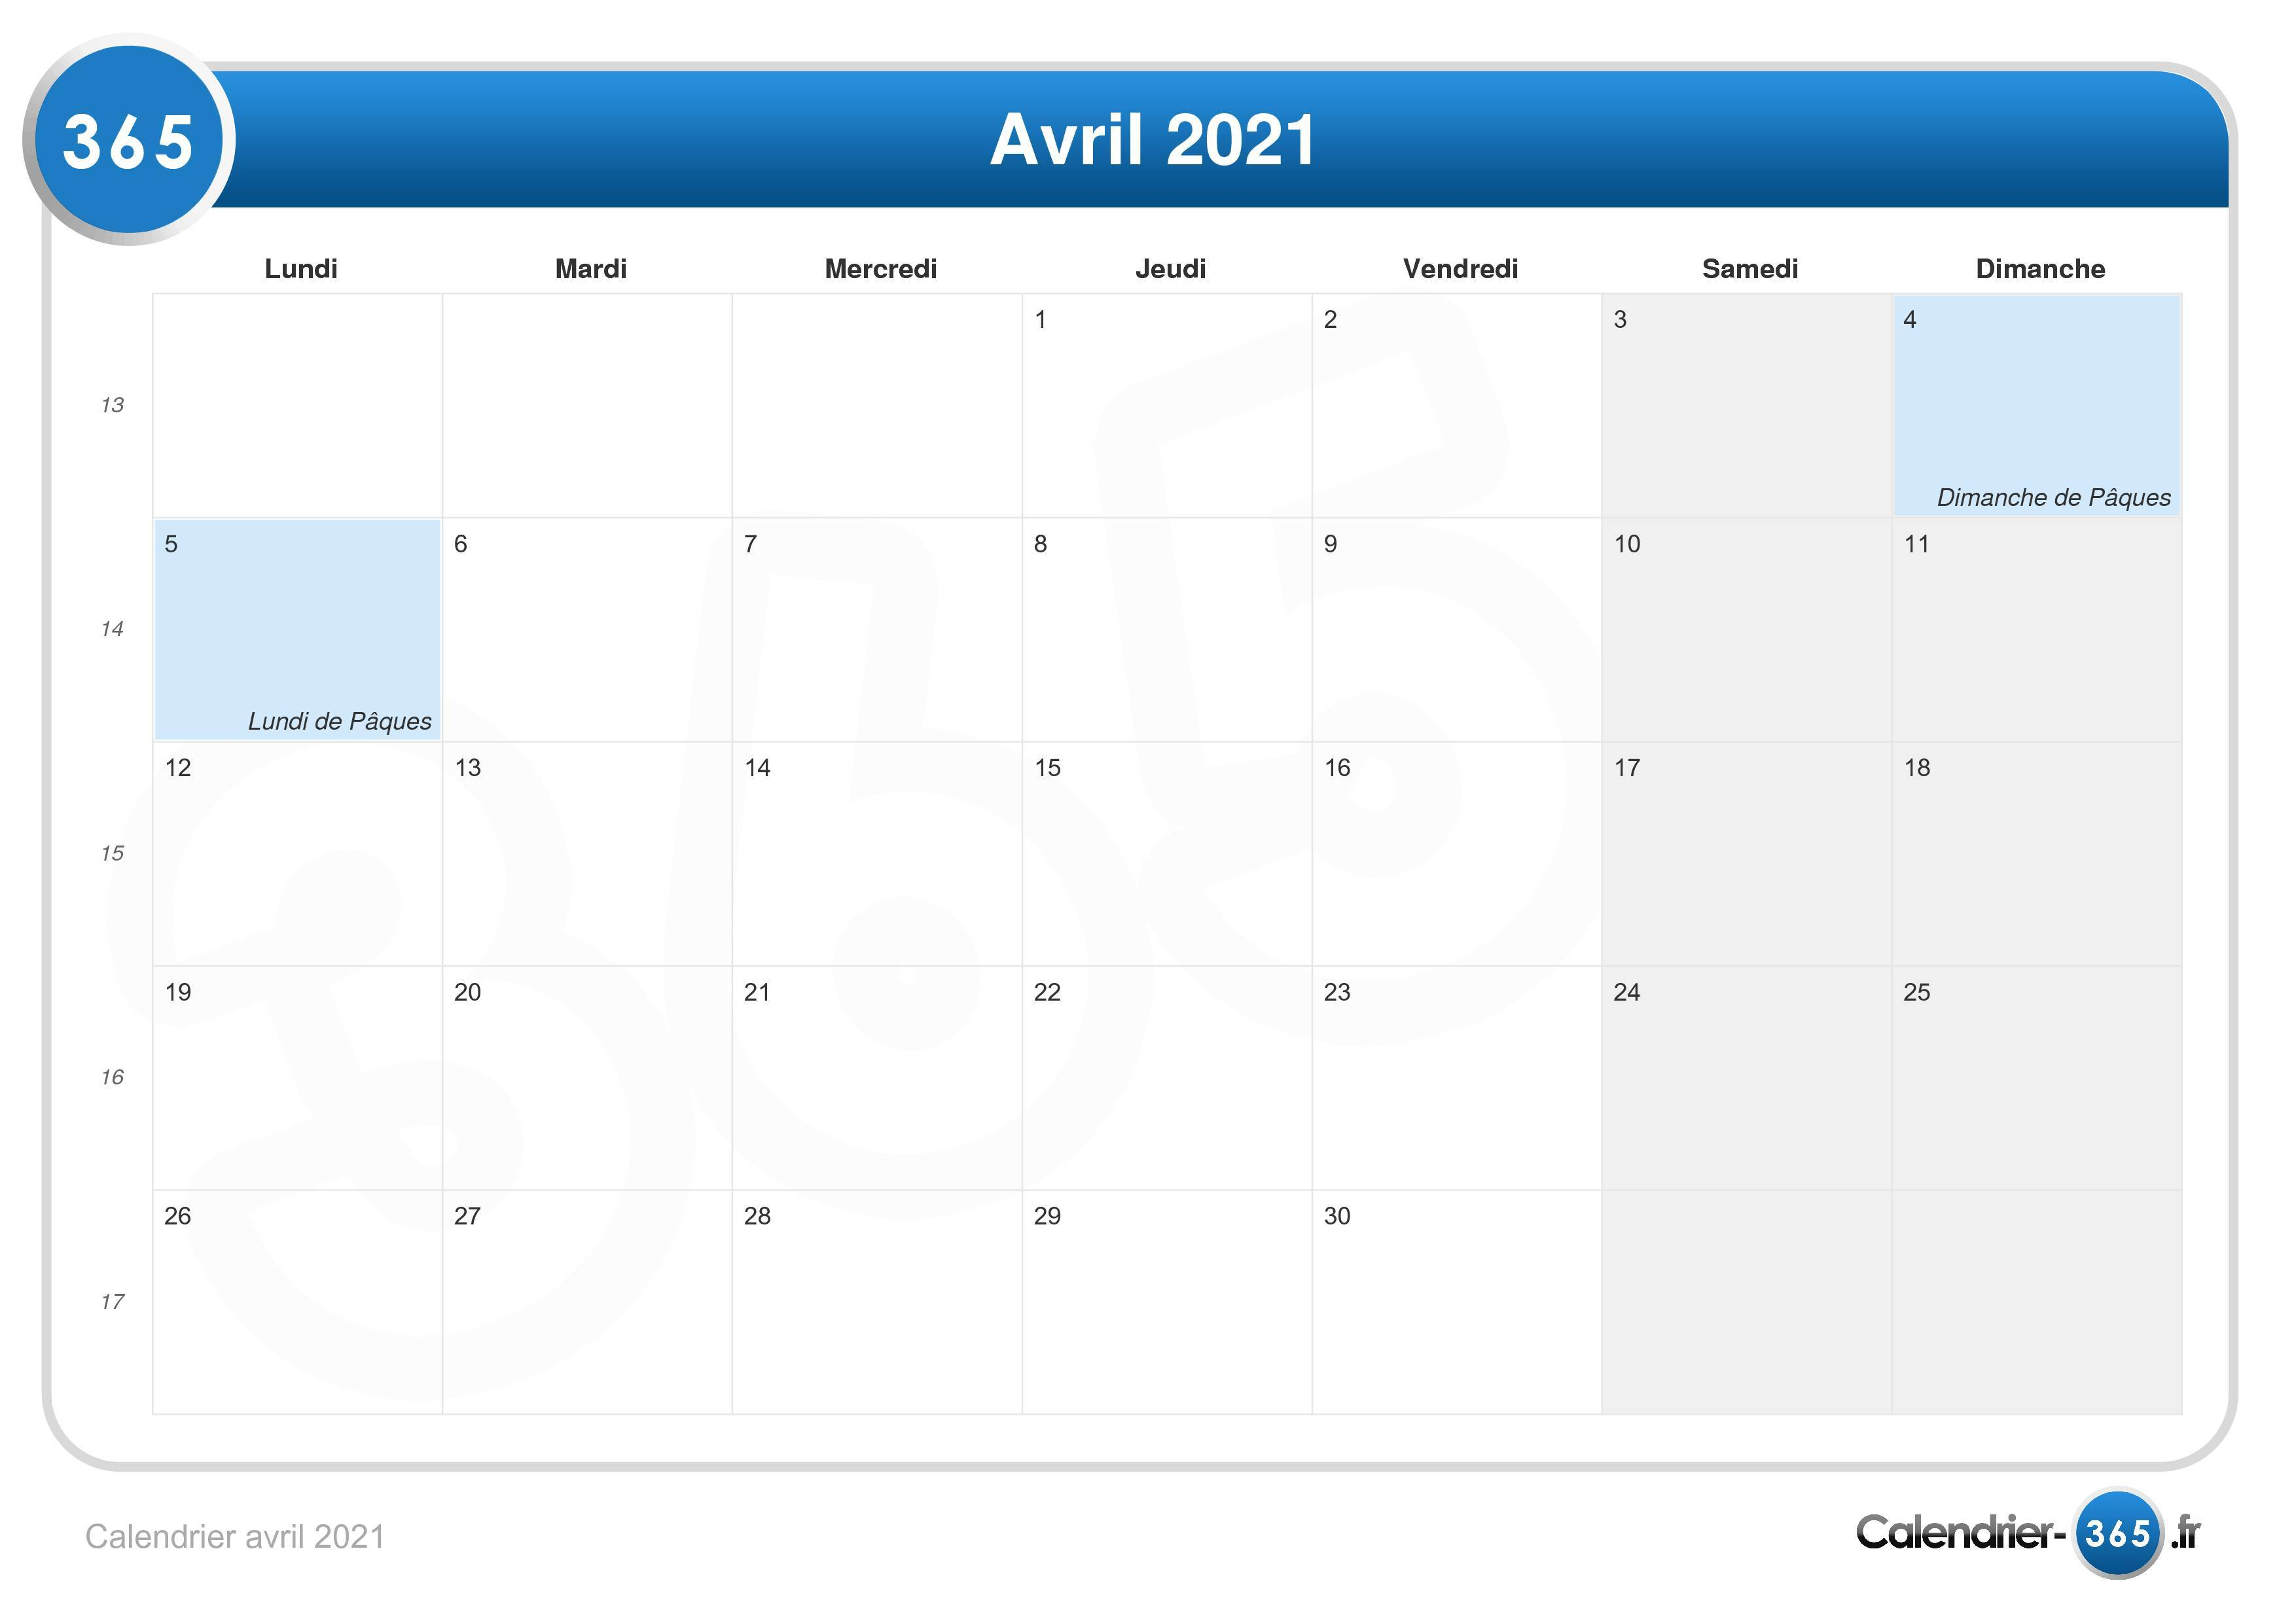 Calendrier 2021 Paques Calendrier avril 2021